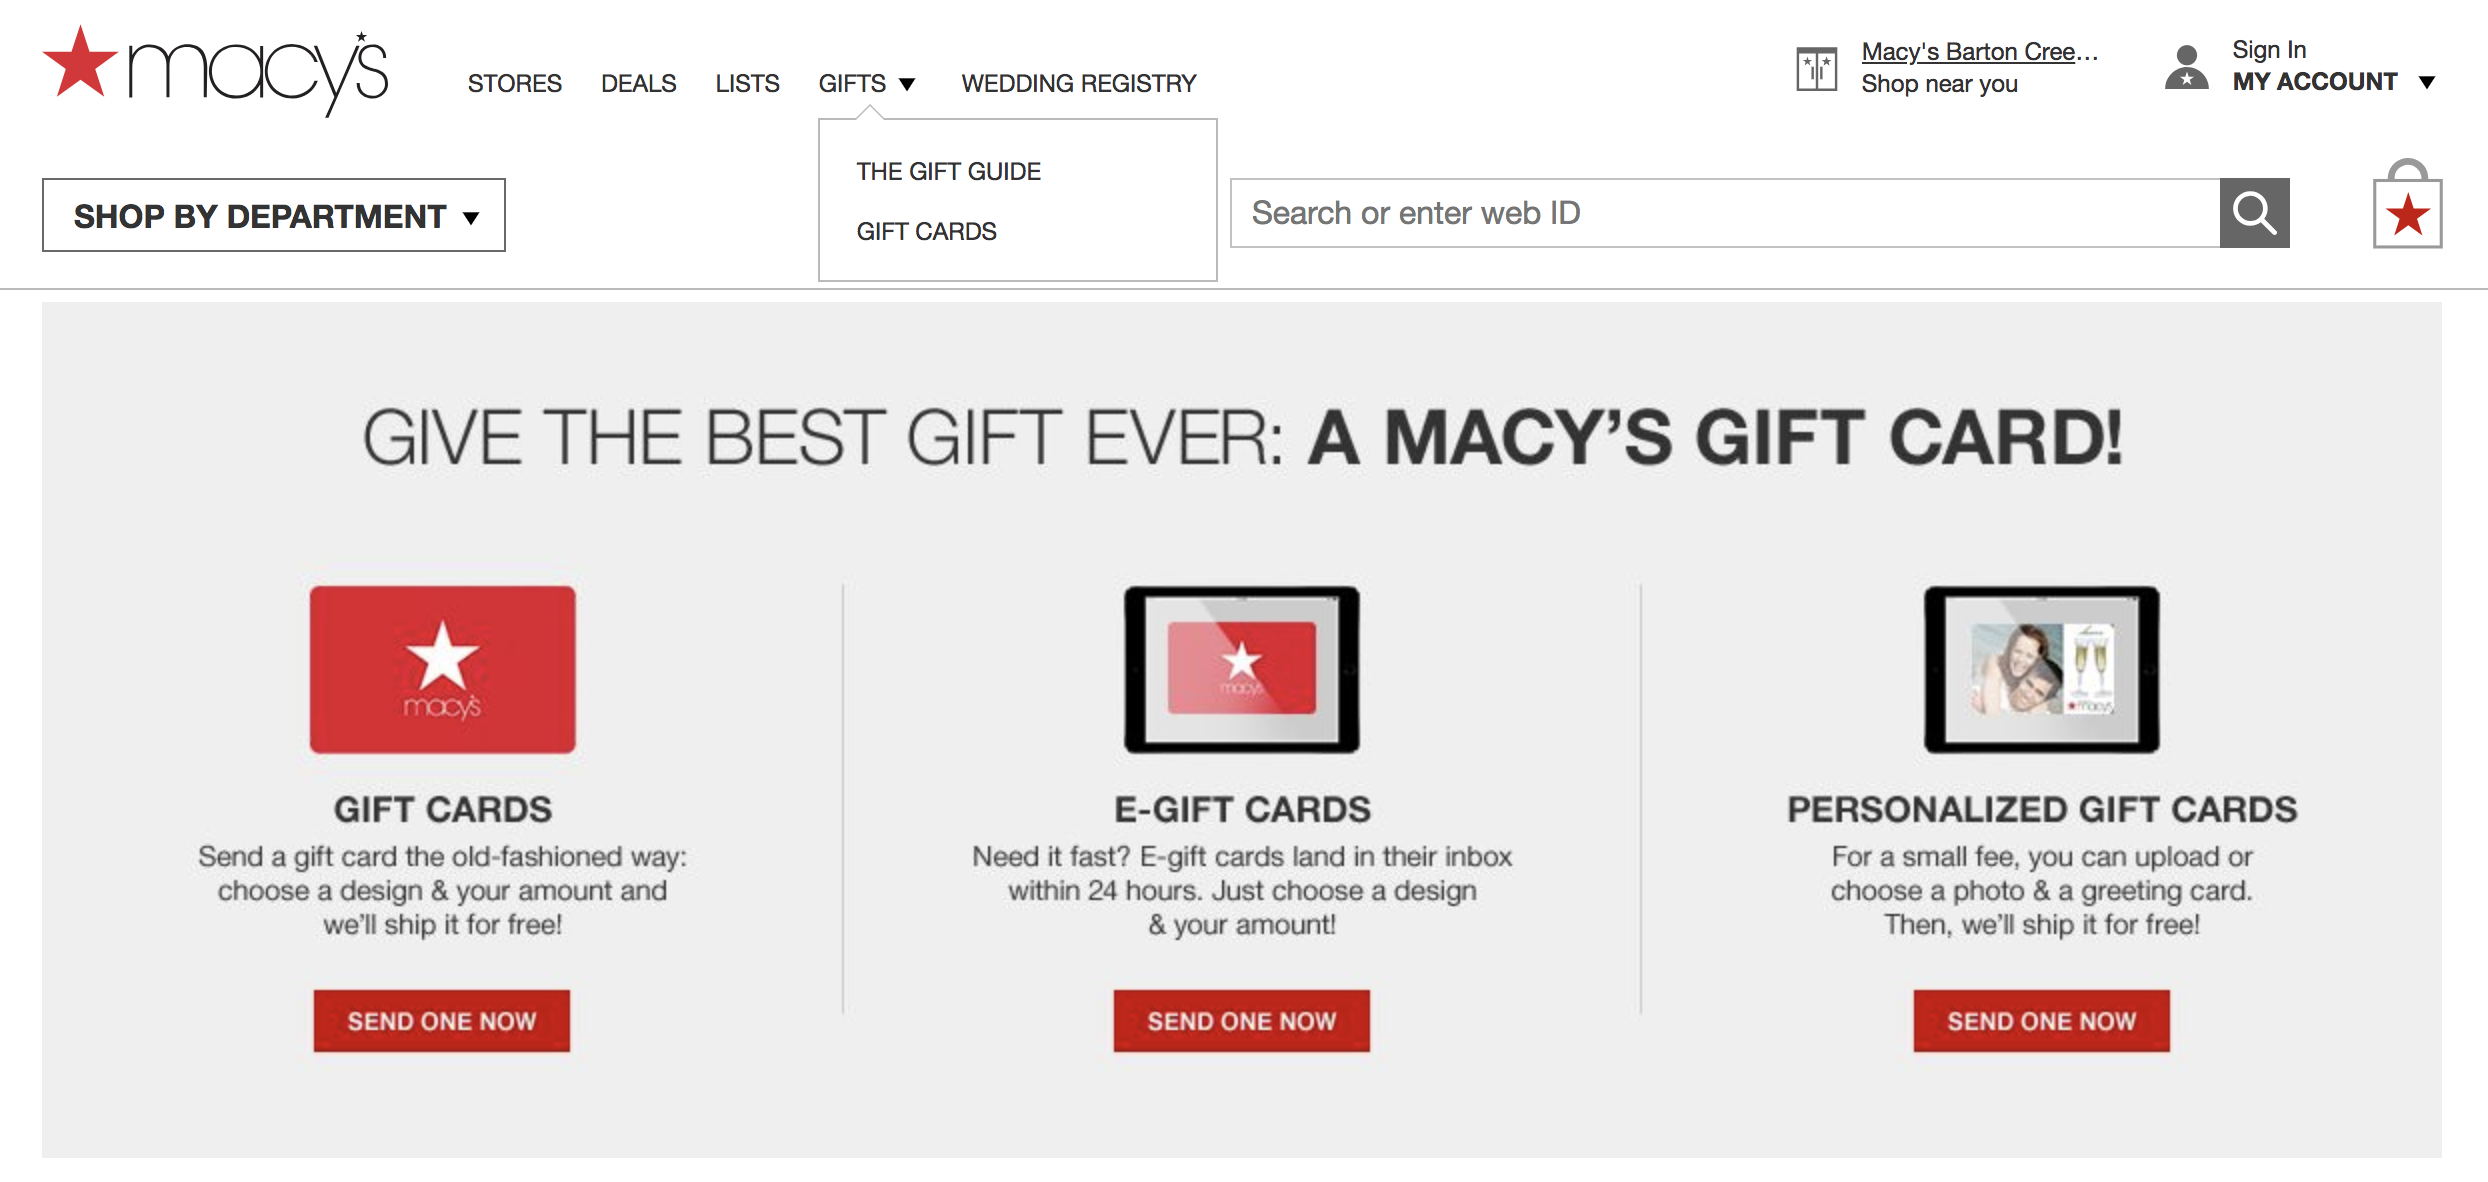 3 Proven Ways To Drive Gift Card Sales And Increase Your Profit